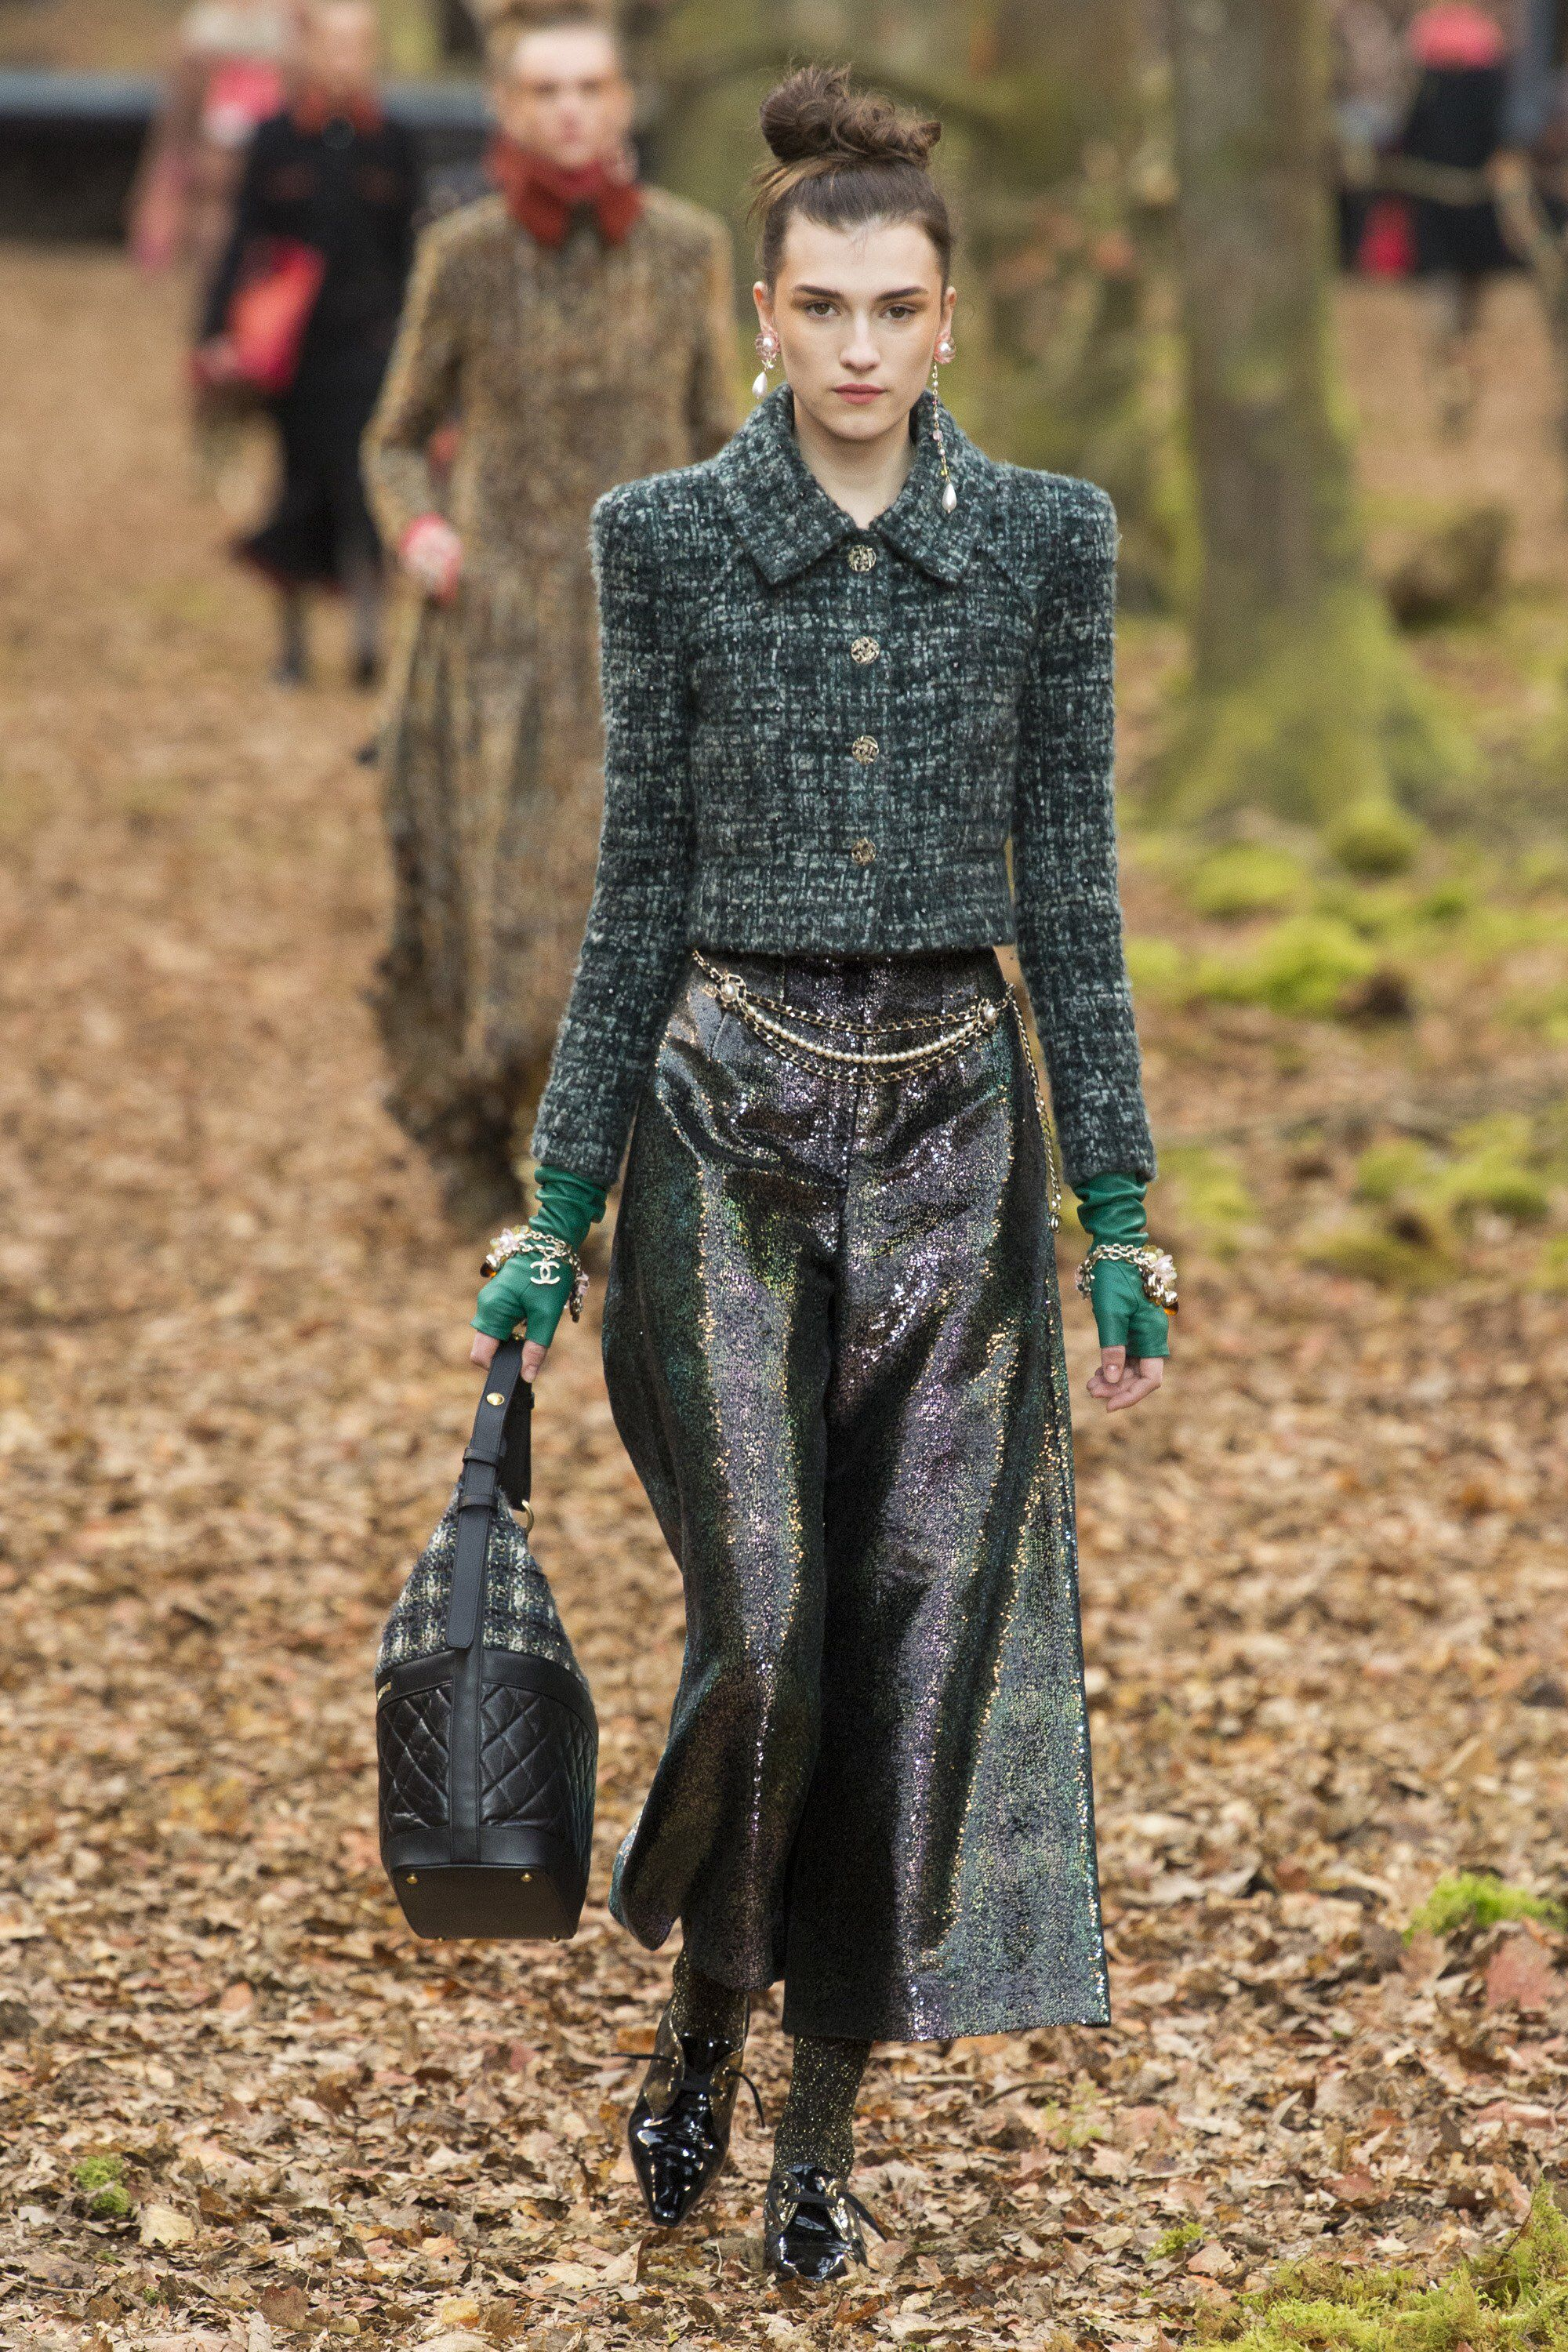 Chanel 2018 fashion show Apos;They were so scared.' Inside the heroic rescue of girls